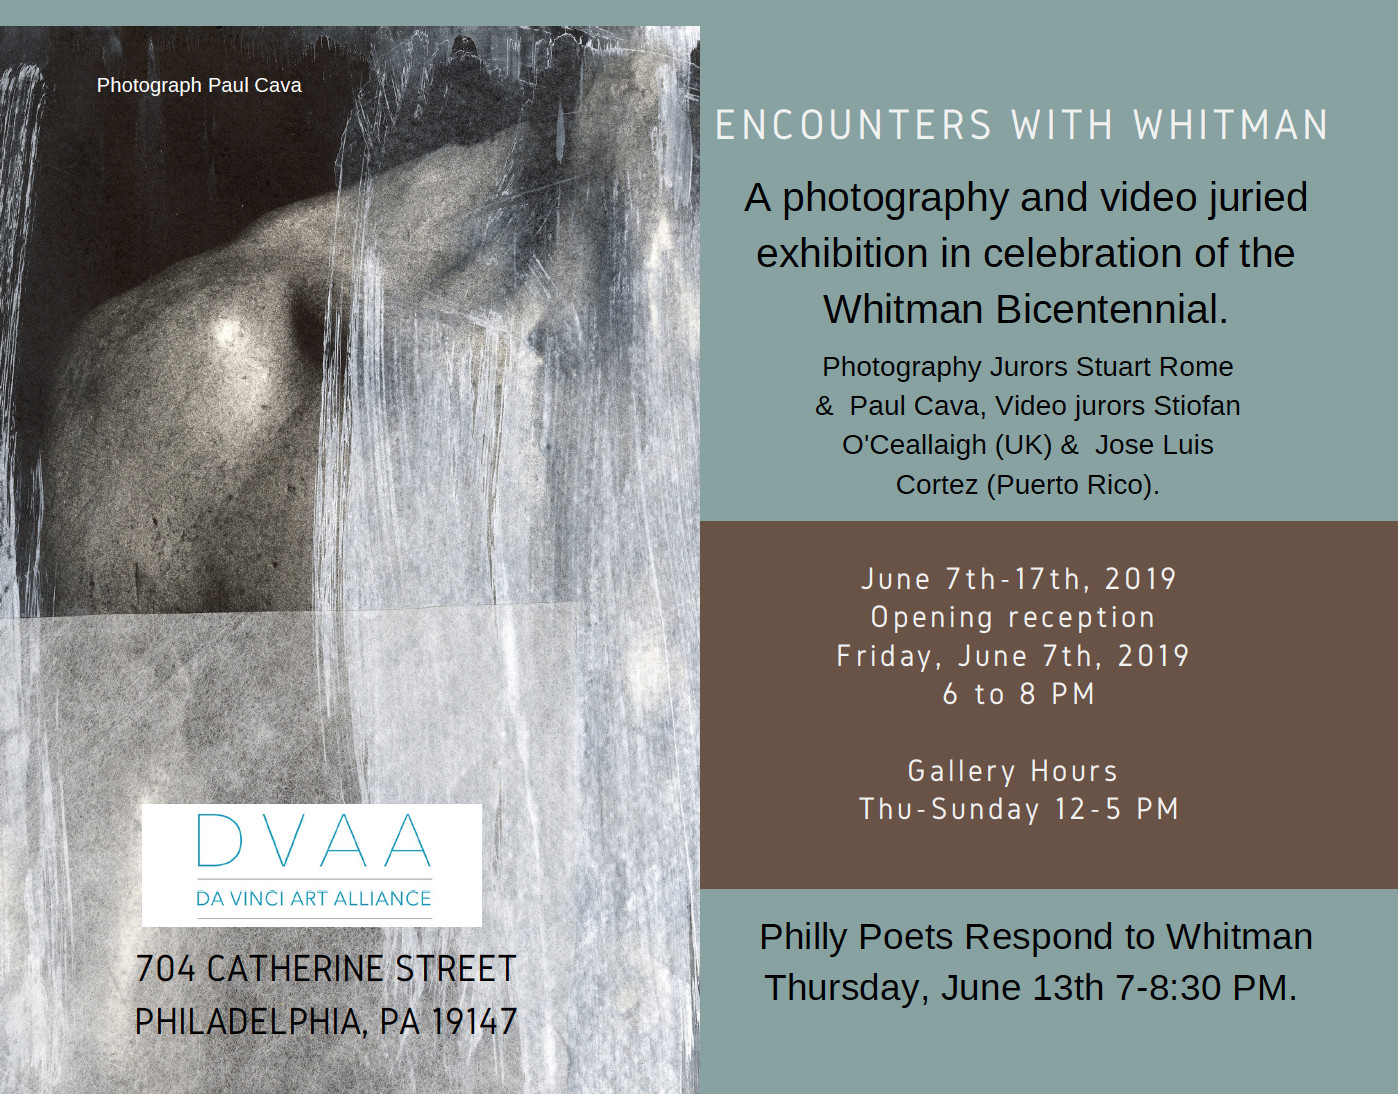 Opening Reception: Encounters with Whitman: a Photography and Video Exhibition